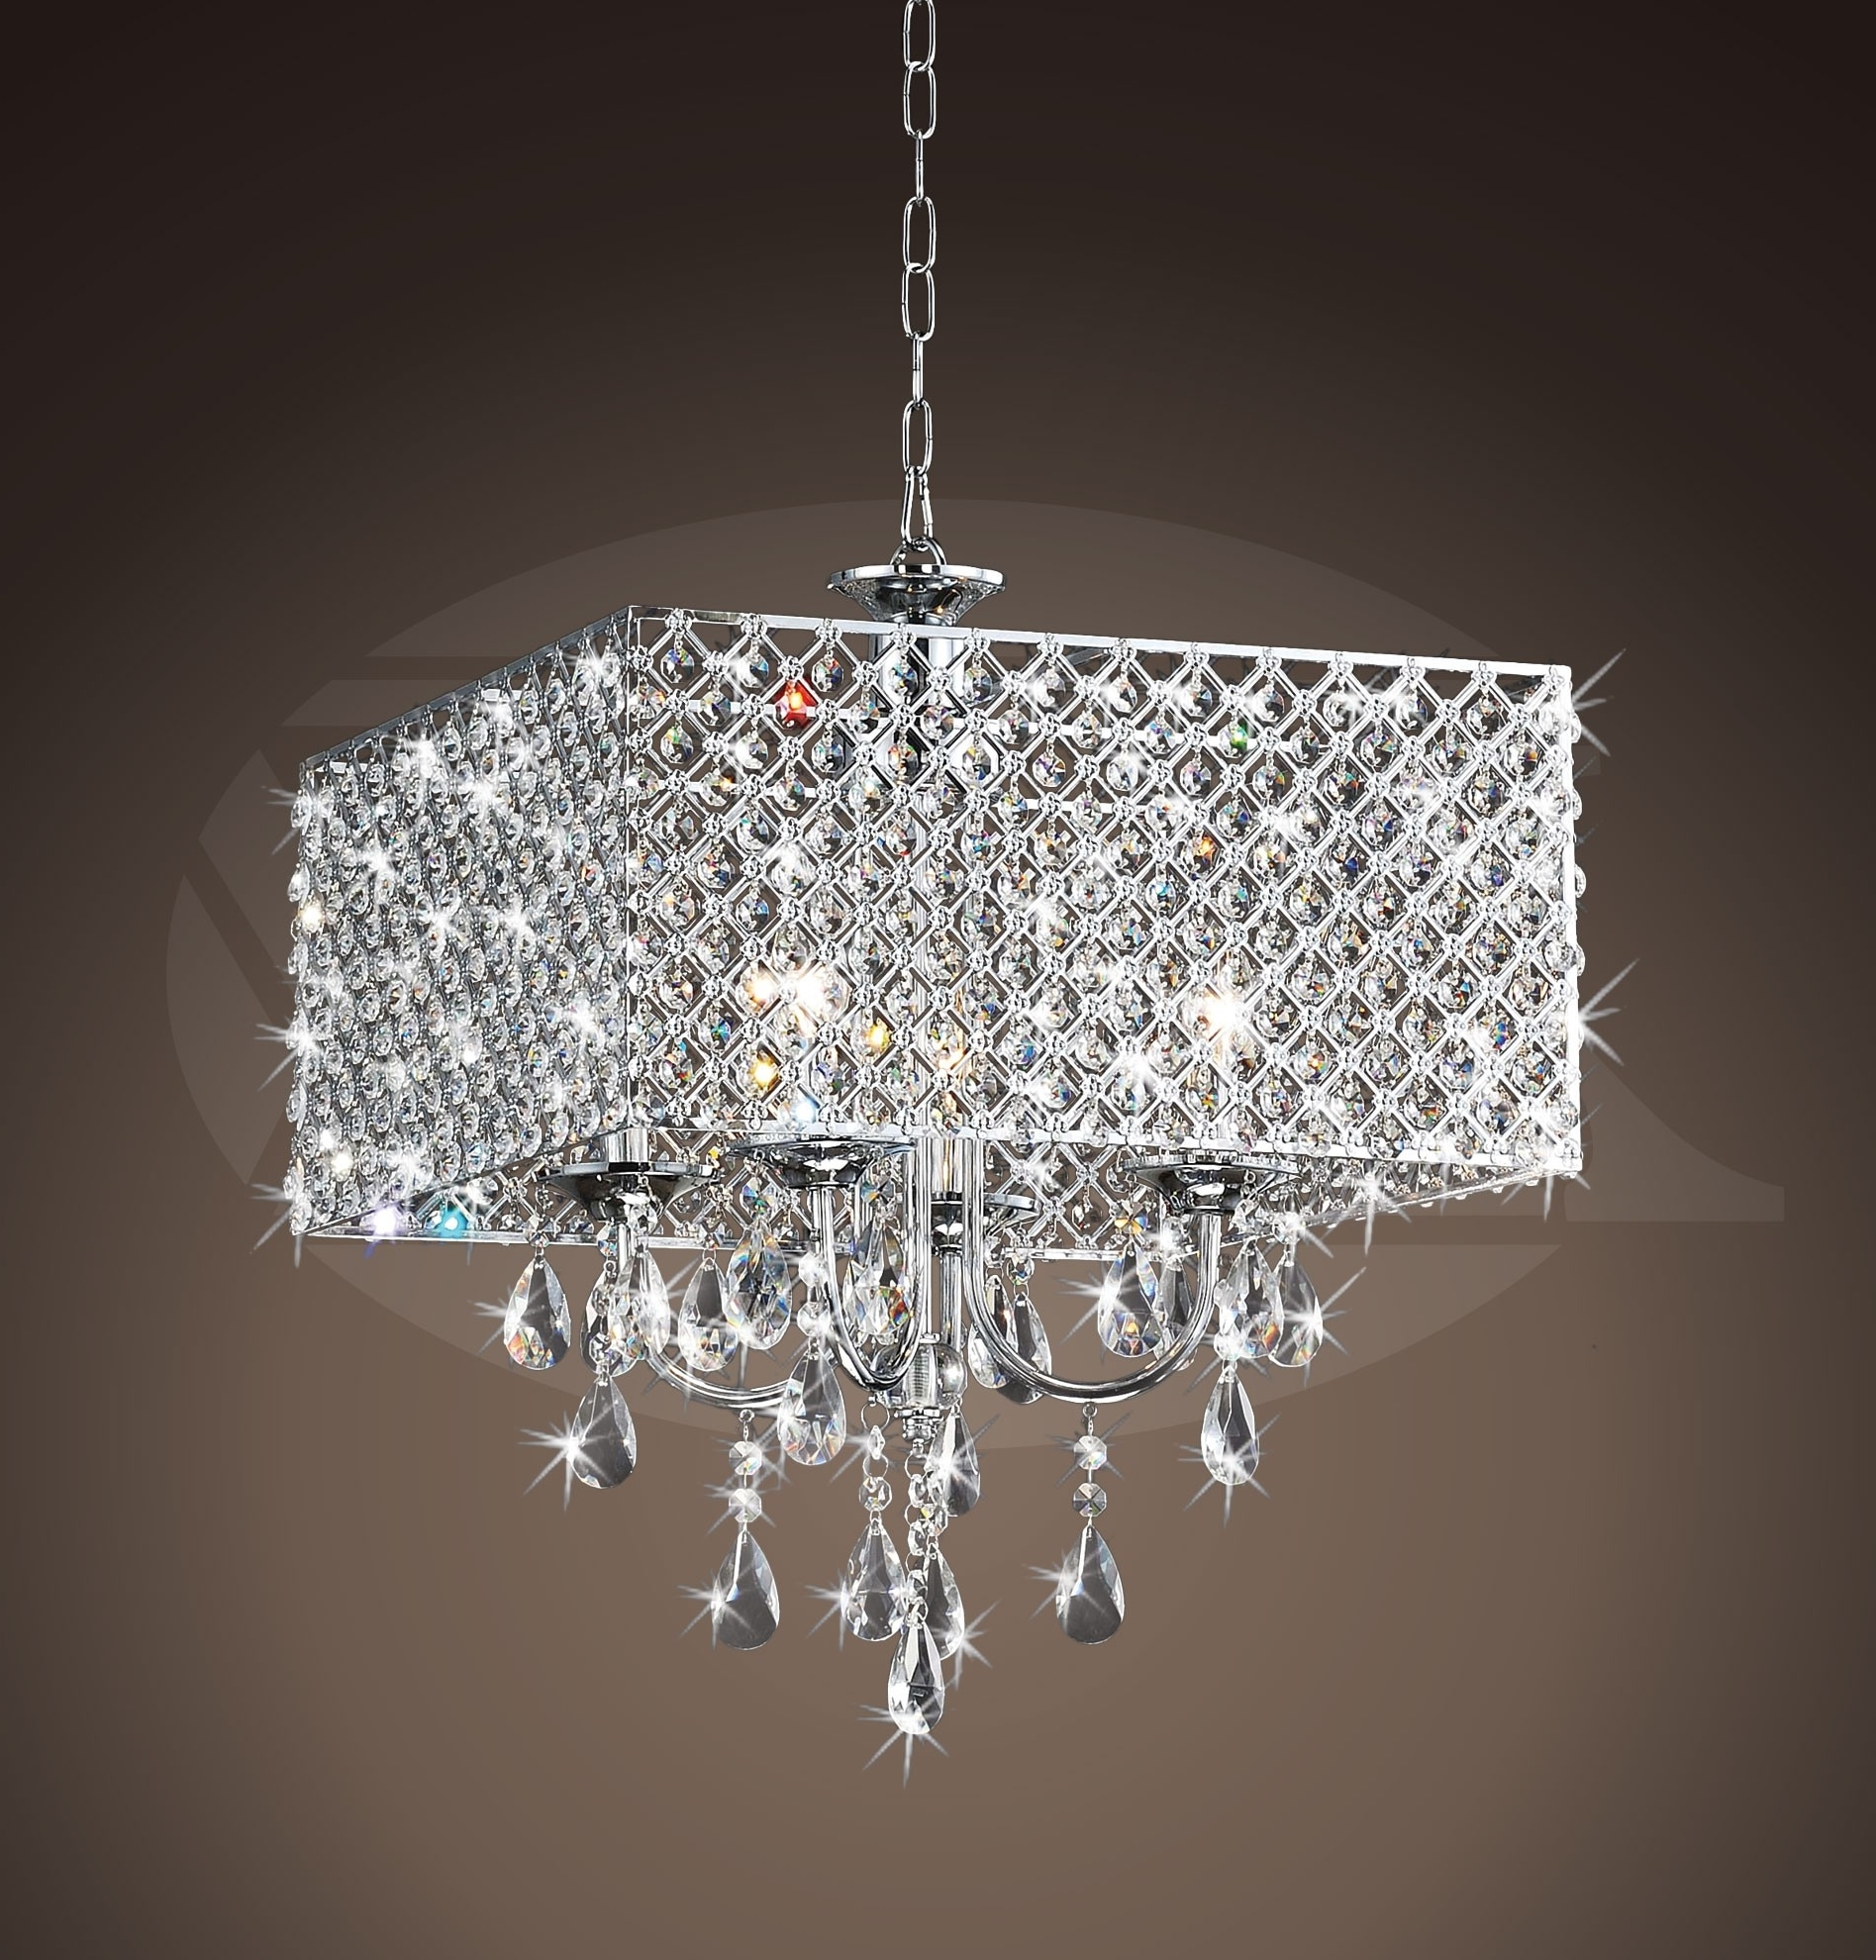 """Best And Newest Rosemary Elegant Crystal Chrome 4 Light Square Chandelier (16""""h X 17 With 4 Light Chrome Crystal Chandeliers (View 6 of 15)"""